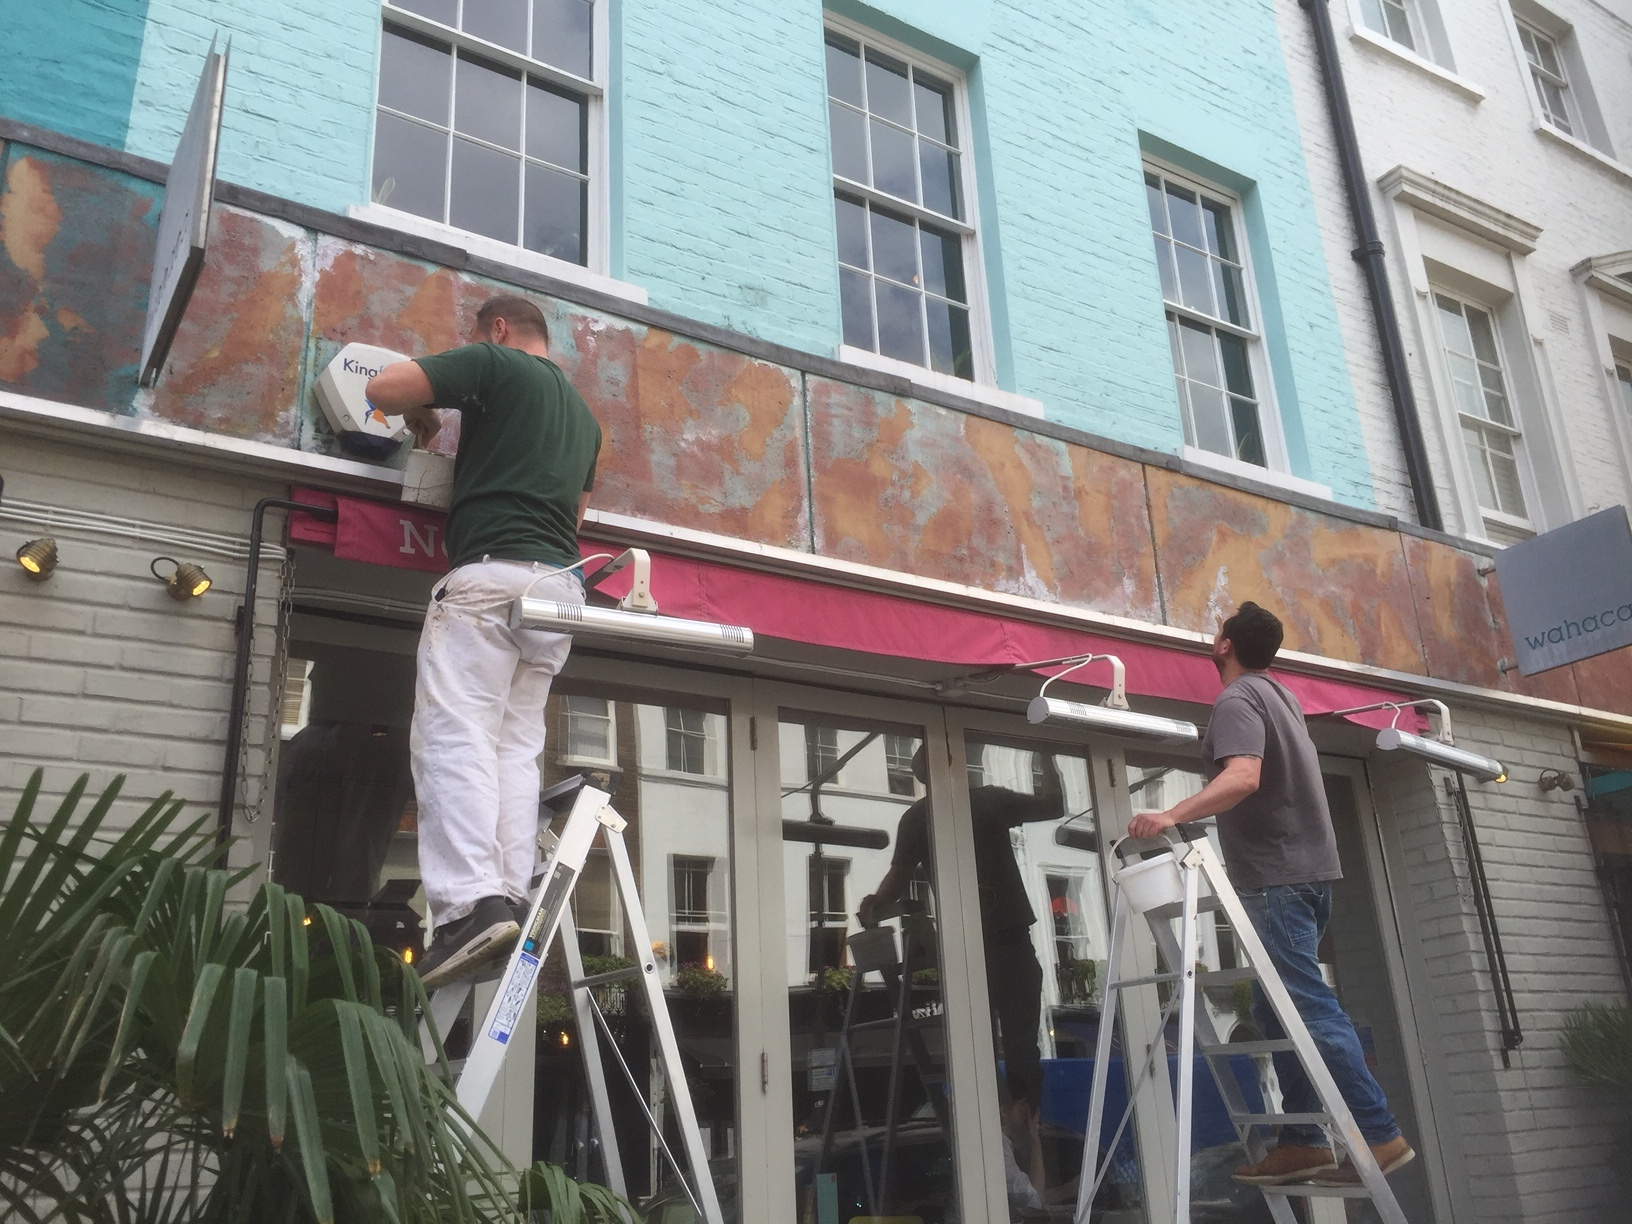 Getting to work on the Wahaca Restaurant sign, Charlotte Street in London.